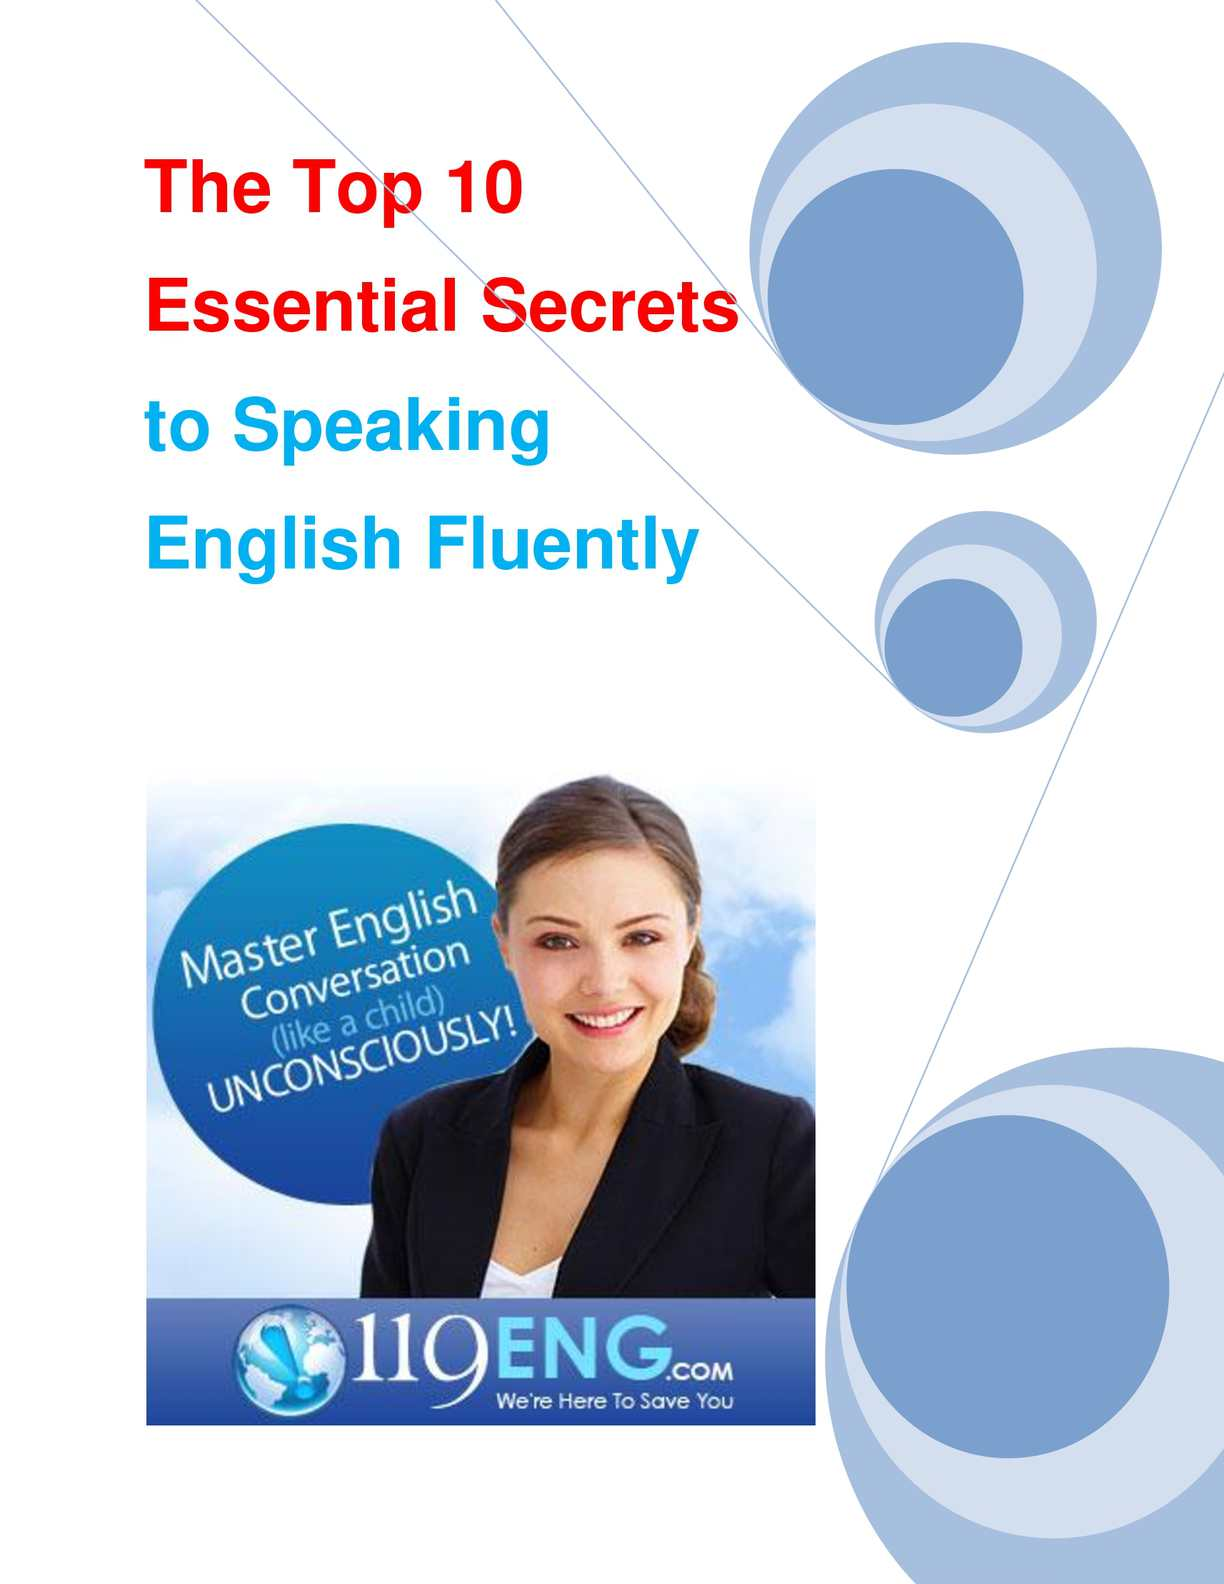 Top 10 Essential Secrets to Speaking English Fluently